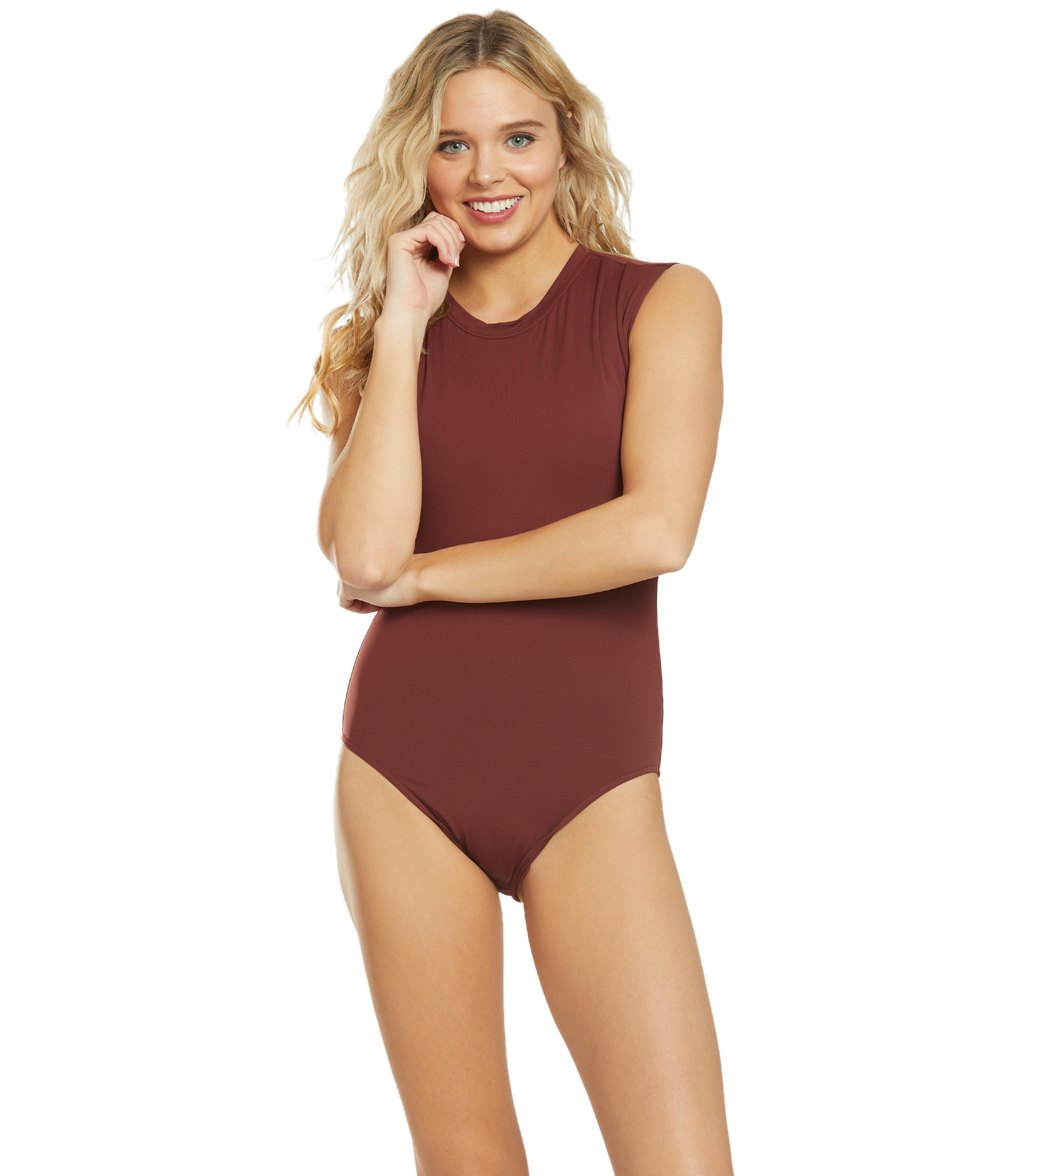 fe8d7167fd Seafolly Active Cap Sleeve One Piece Swimsuit at SwimOutlet.com ...